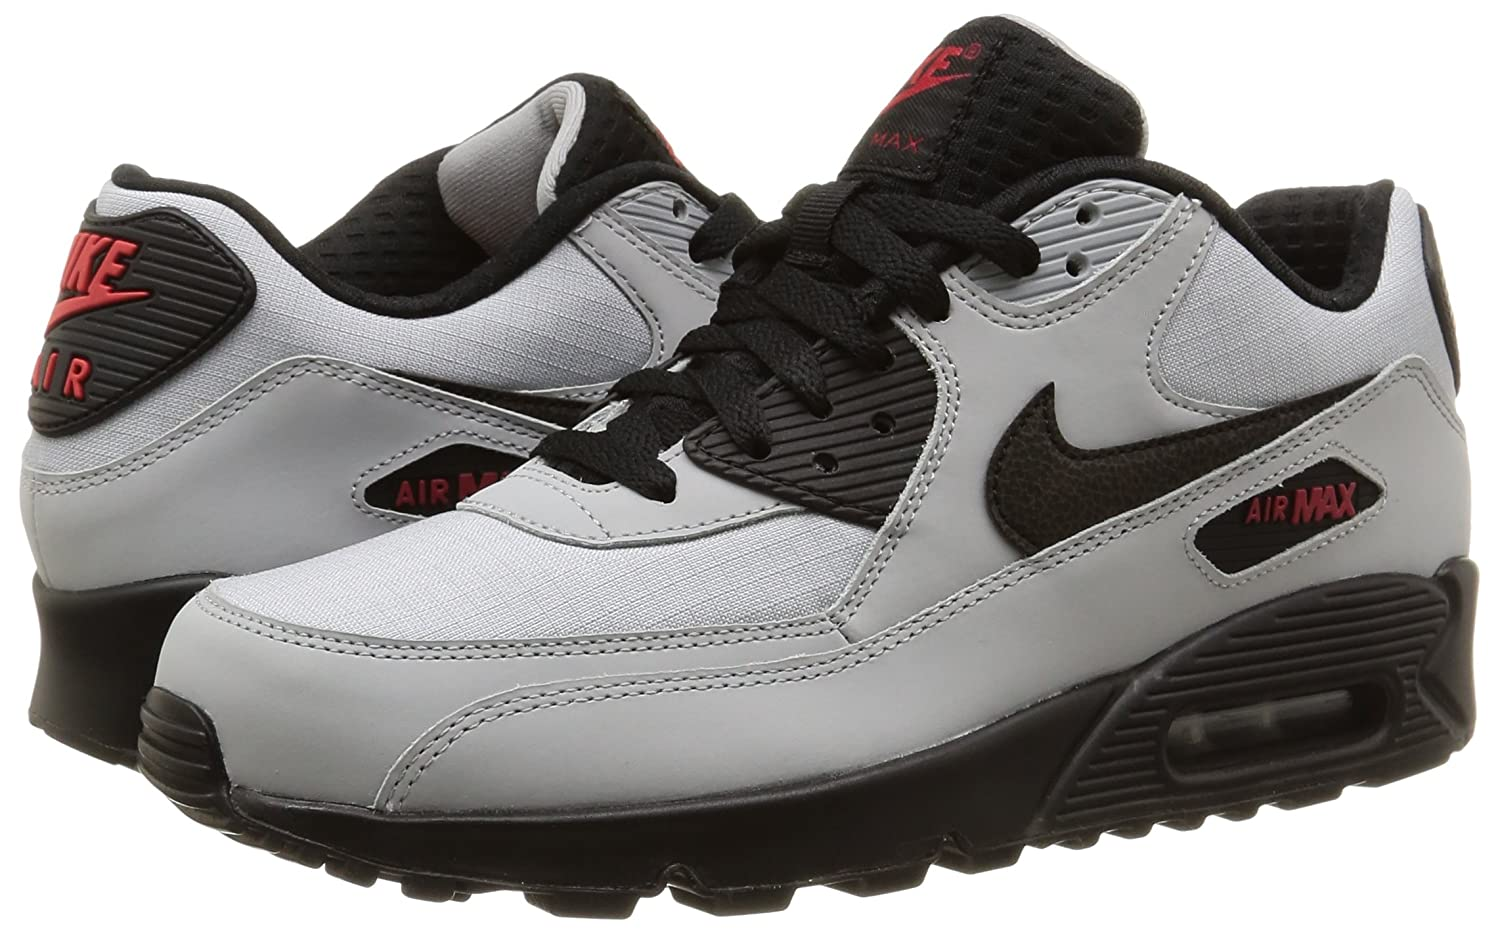 promo code 5074c 57d8a Nike Men s Air Max 90 Essential Sneakers  Amazon.co.uk  Shoes   Bags